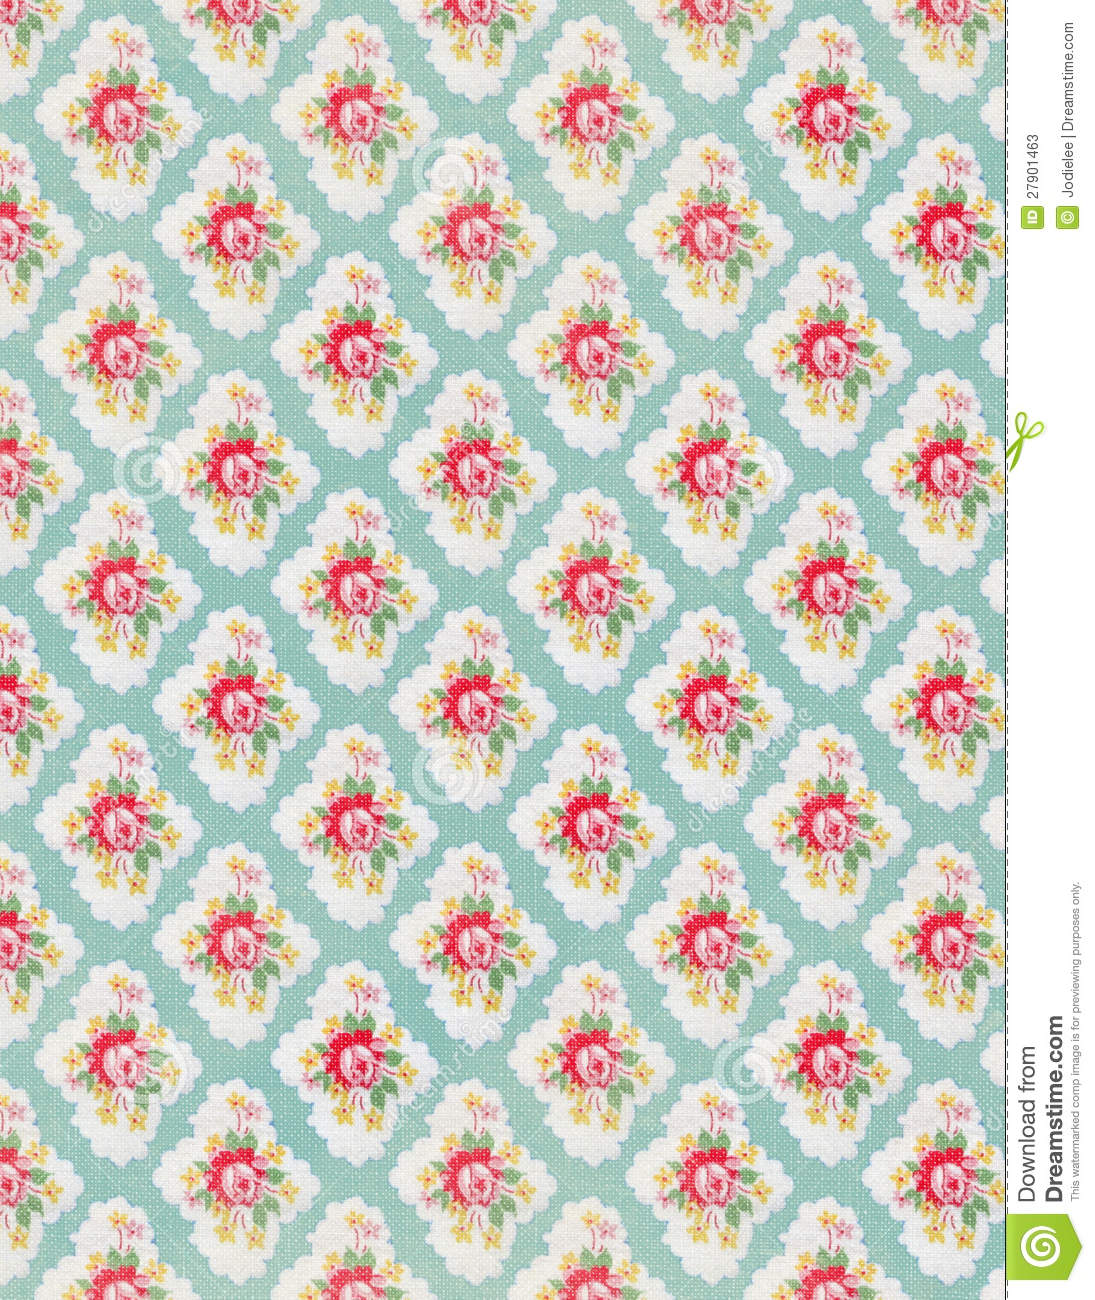 Vintage Floral Wallpaper Rose Repeat Pattern Stock Image Image